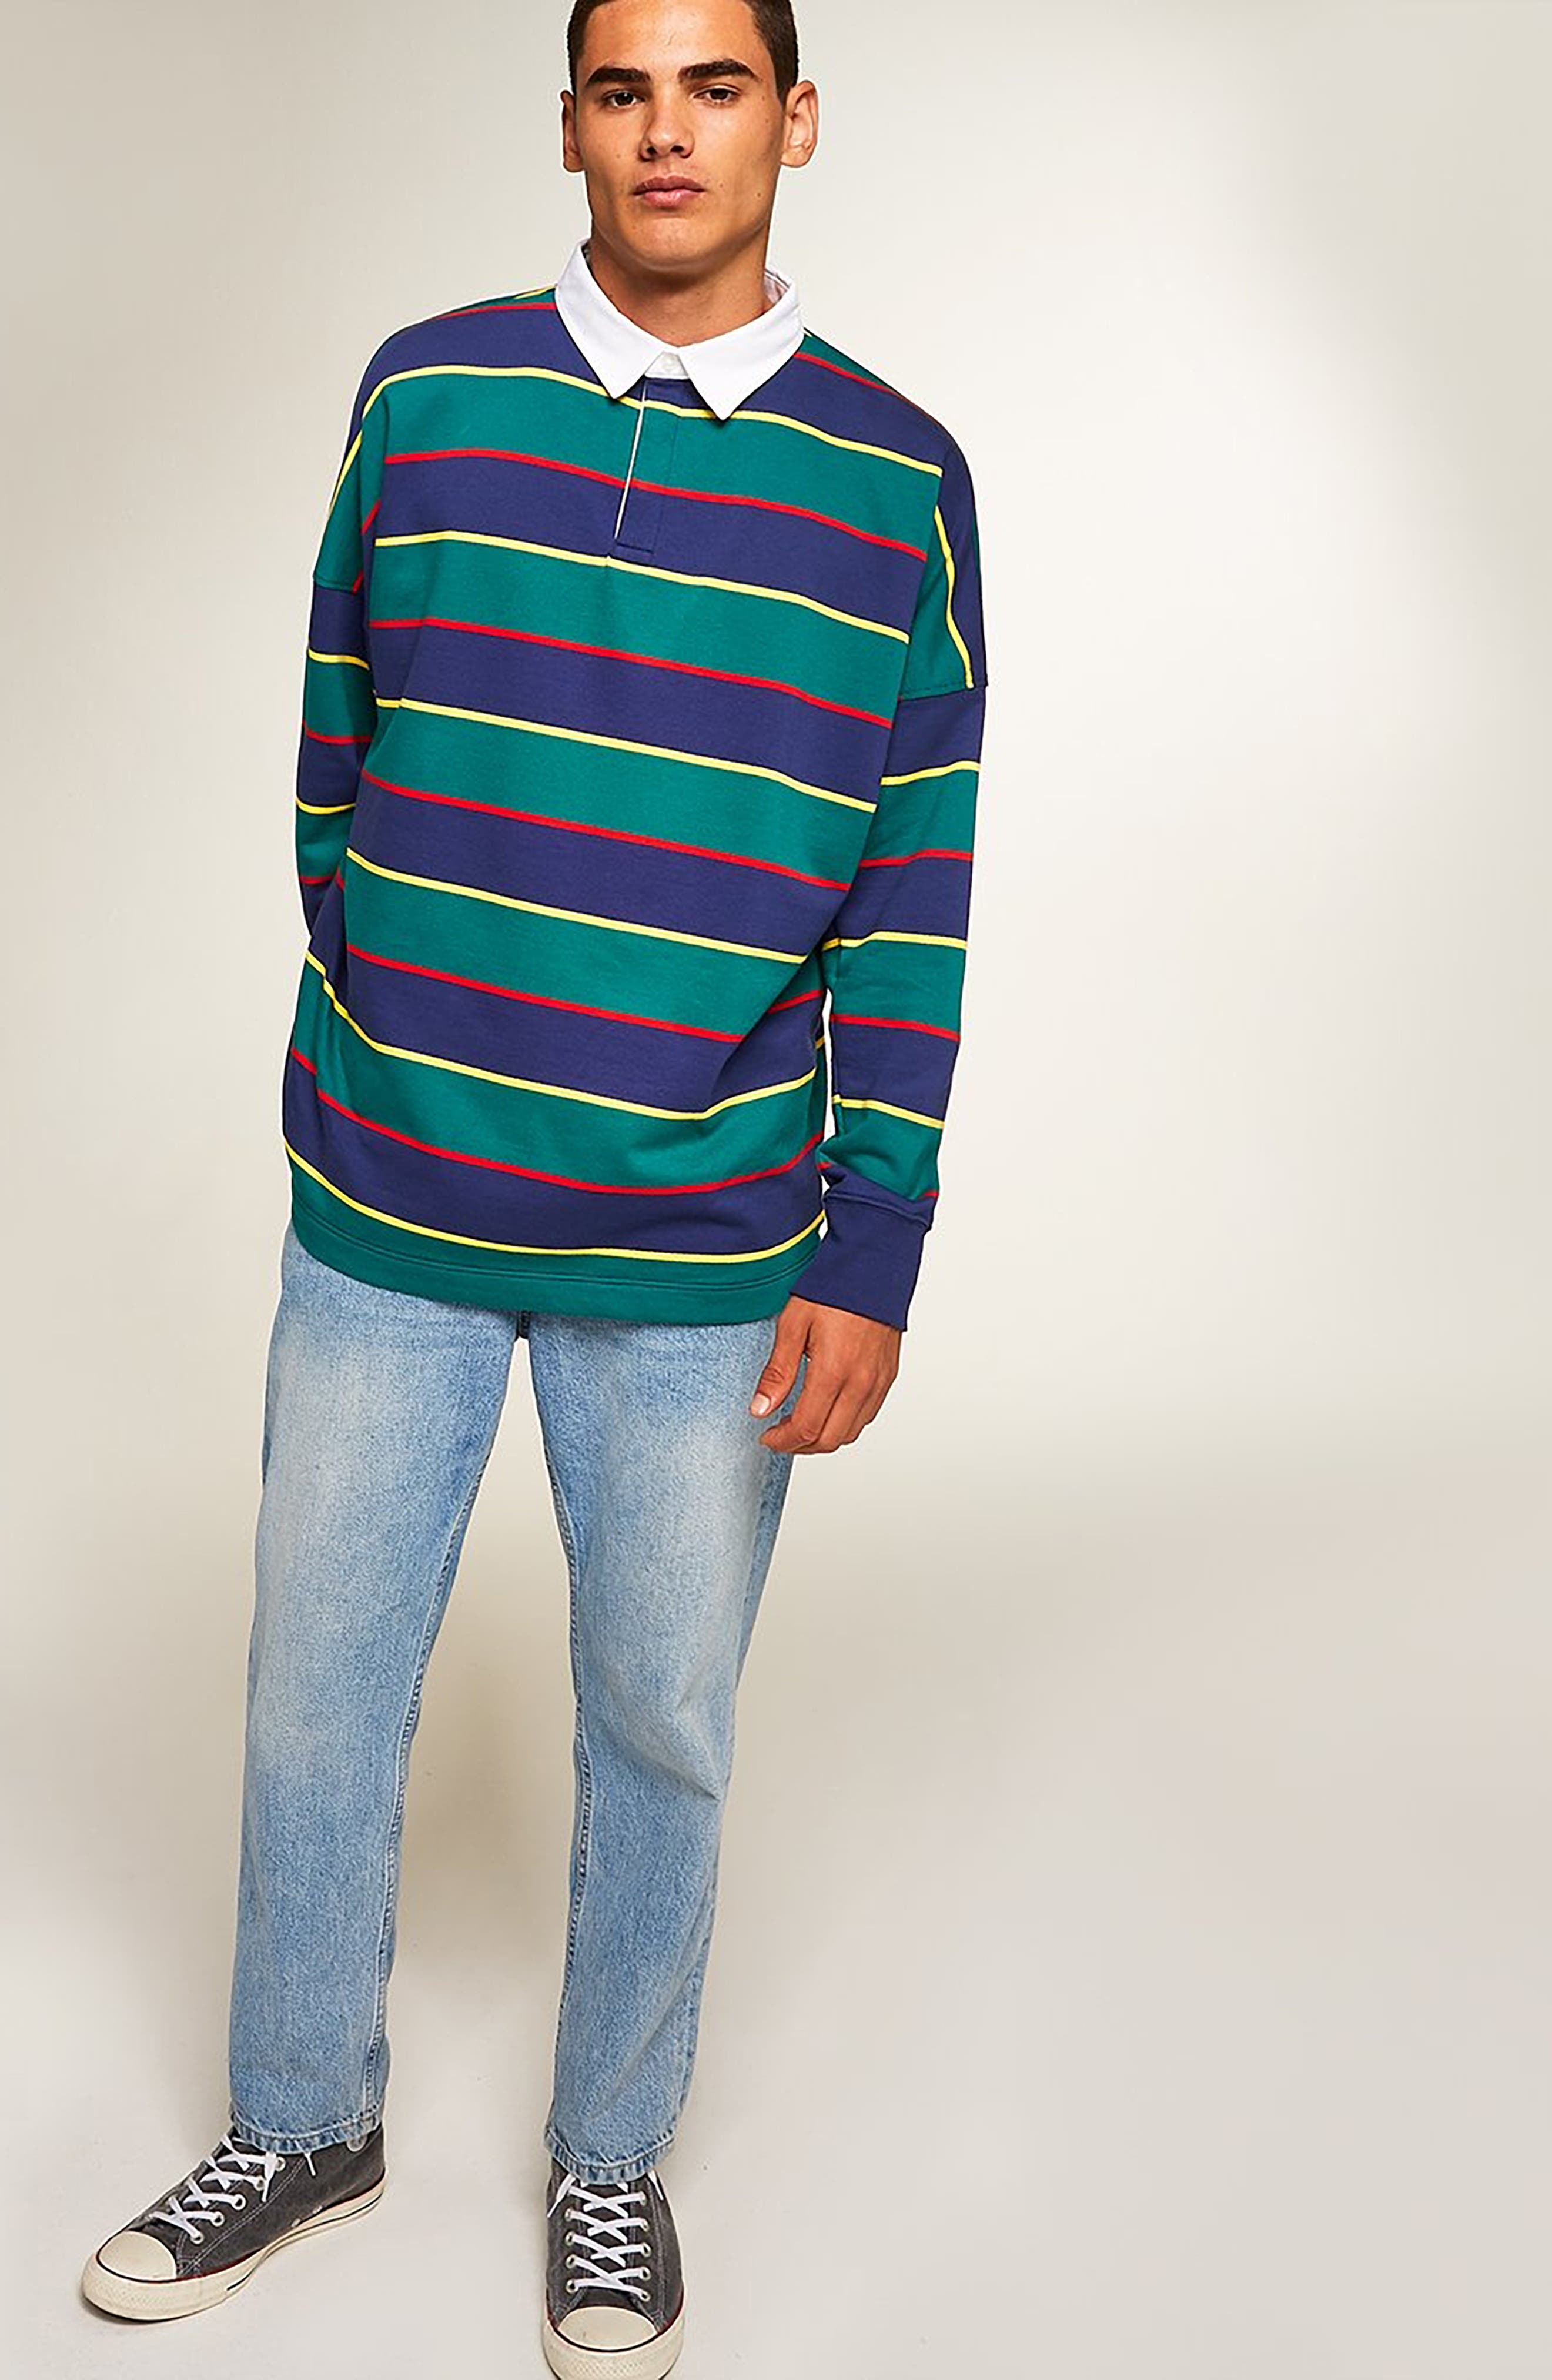 Rugby Stripe Shirt,                             Alternate thumbnail 5, color,                             GREEN MULTI